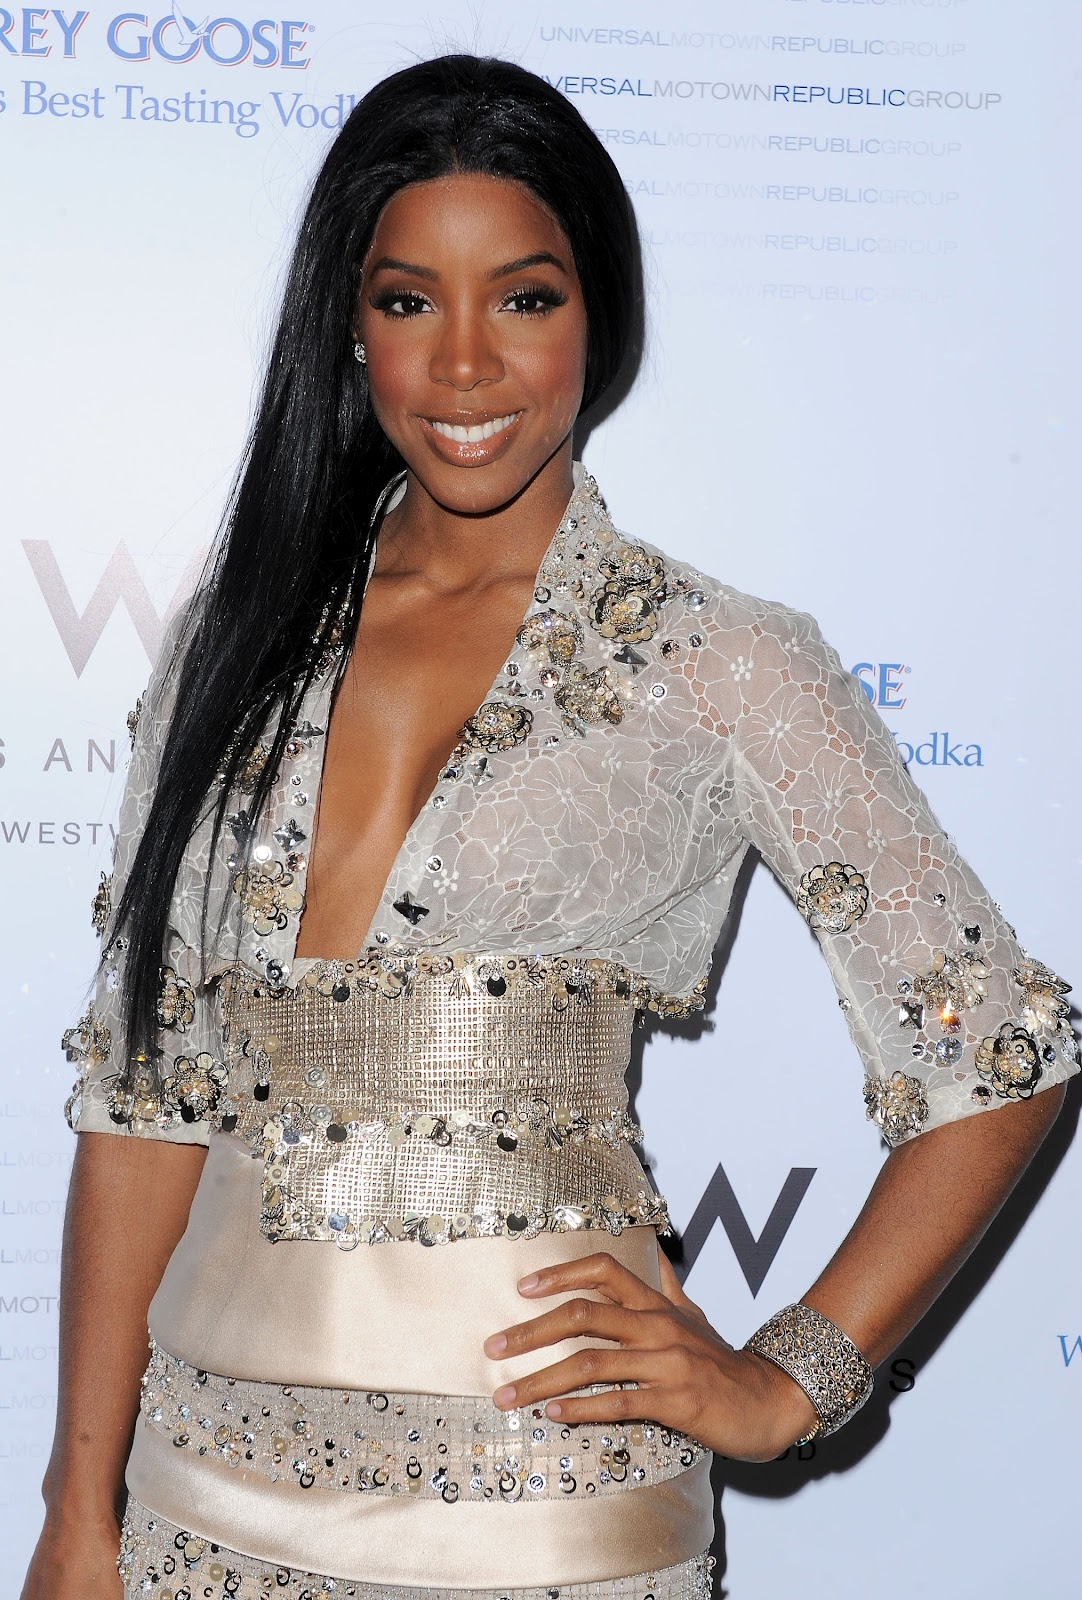 http://2.bp.blogspot.com/-Kfy98oh-Qec/UB2KZfG71uI/AAAAAAAAFQw/SptNm2BzXTQ/s1600/Kelly-Rowland-hairstyle-pictures-singer-actress-celebrity-on%2Band%2Bon-Kelly-Rowlands-wallpapers%2B(3).jpg